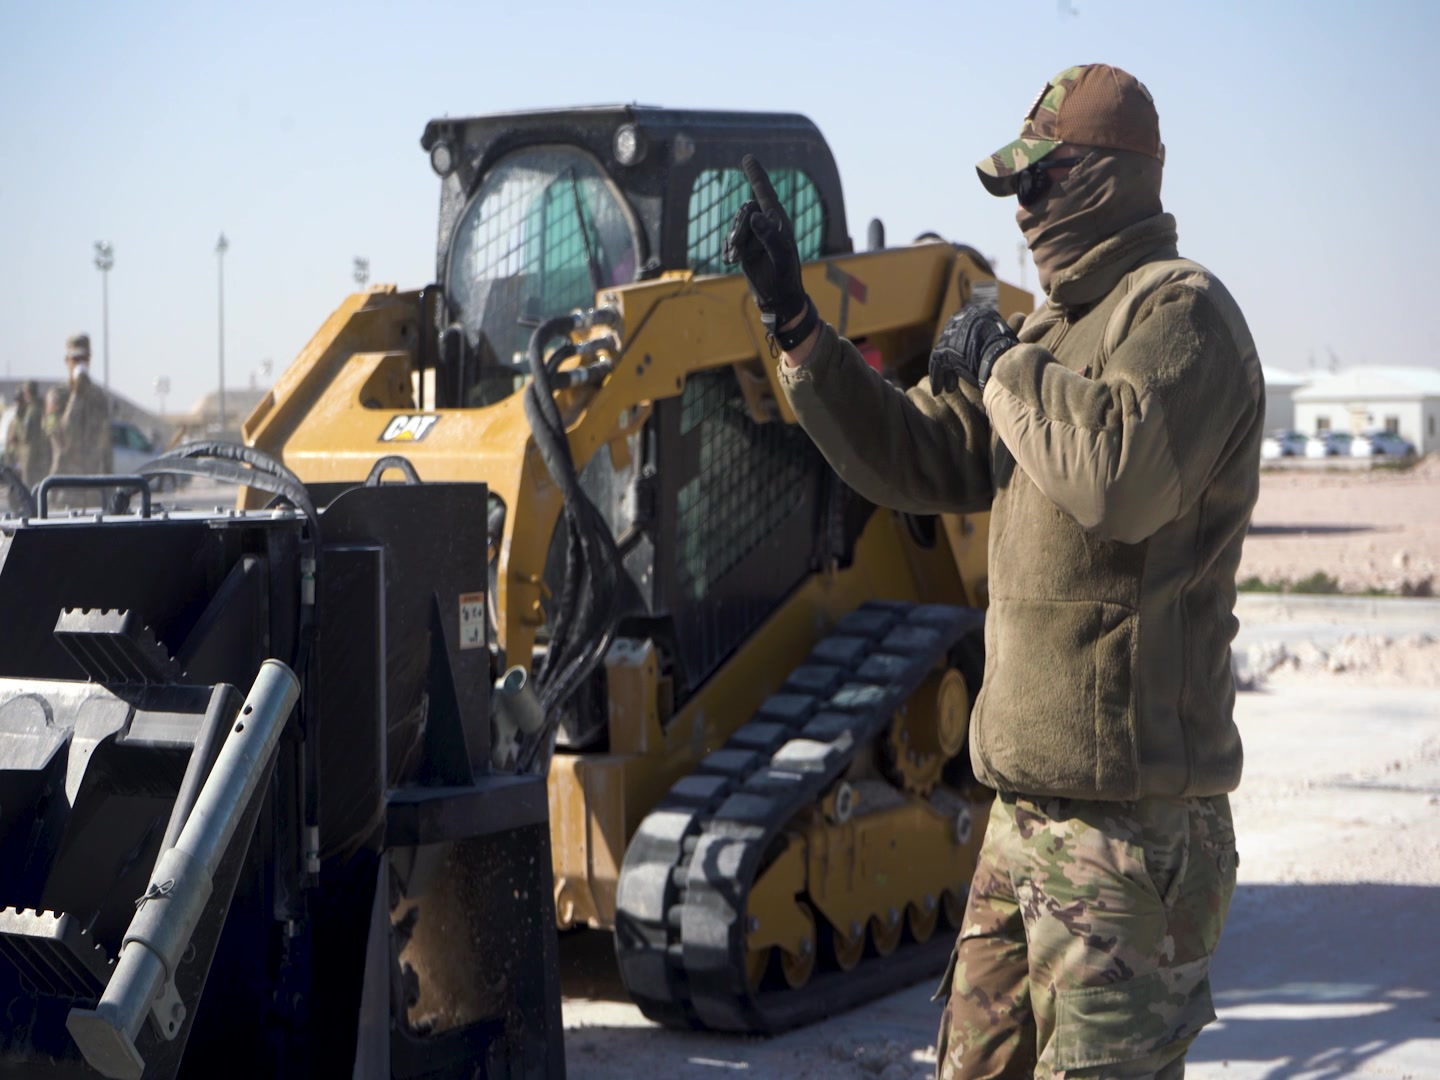 The 379th Expeditionary Civil Engineer Squadron took part in Rapid Airfield Damage Recovery (RADR) training at Al Udeid Air Base, Qatar on February 12, 2020. Mobile training teams from the 435th Construction and Training Squadron at Ramstein Air Base, Germany, conducted the training to ensure 379 ECES Airmen are ready to respond to real-world threats.